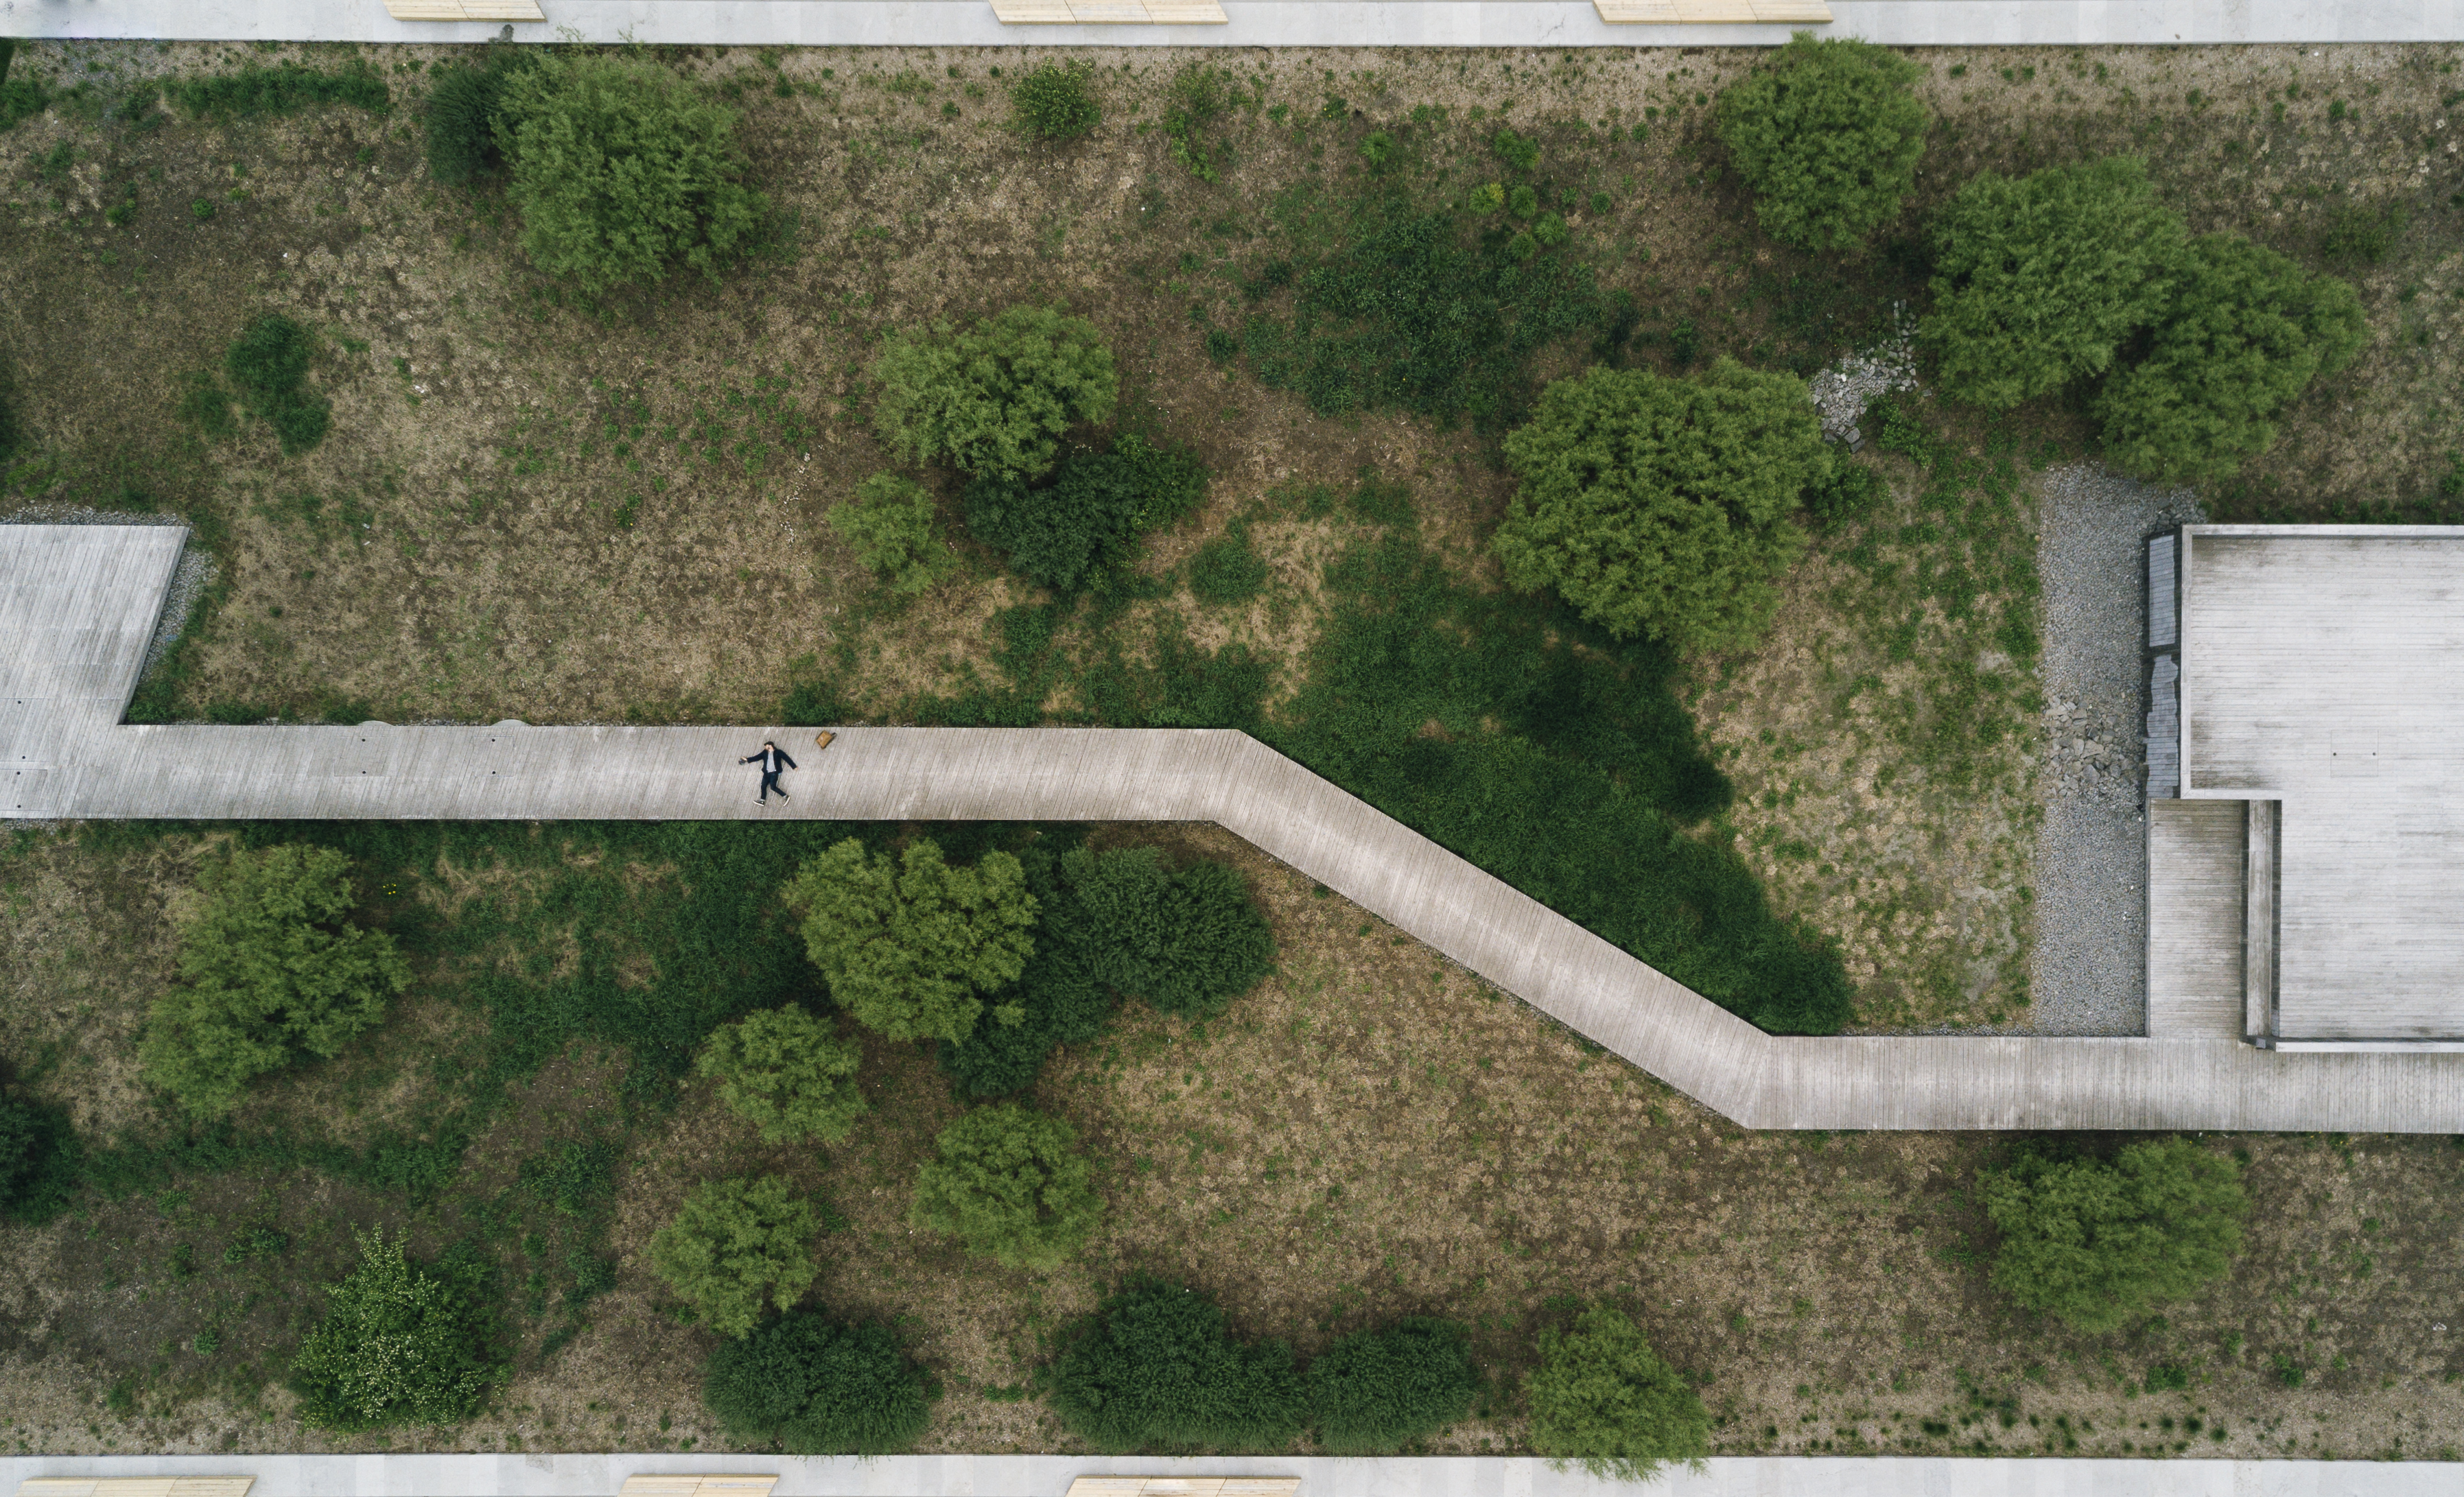 Symmetric Top-Down Photographs Inspired by Nintendo Games of the 80's